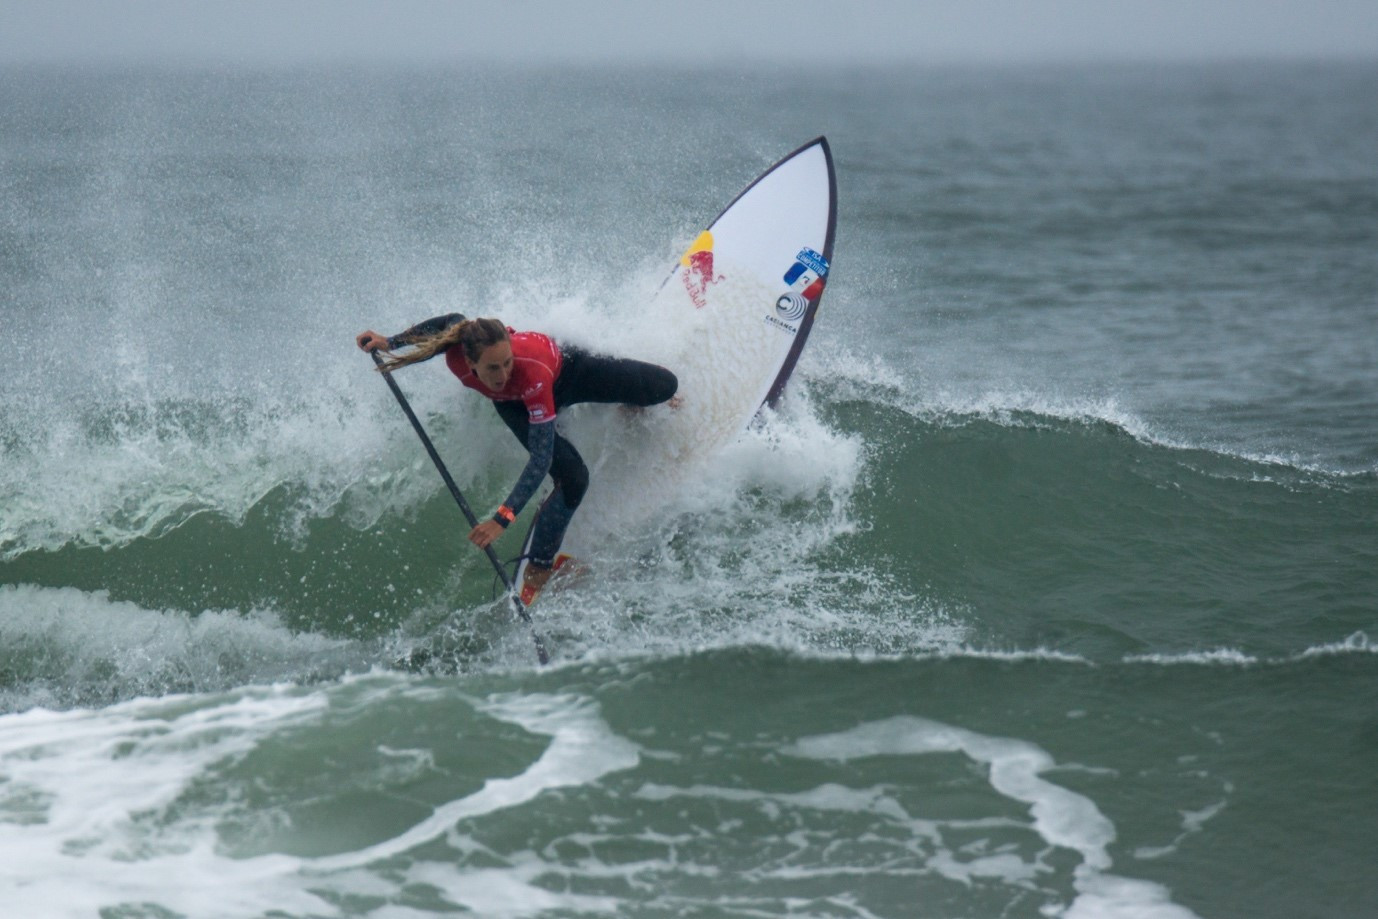 Justine Dupont will lead the ISA's Athletes' Commission ©ISA